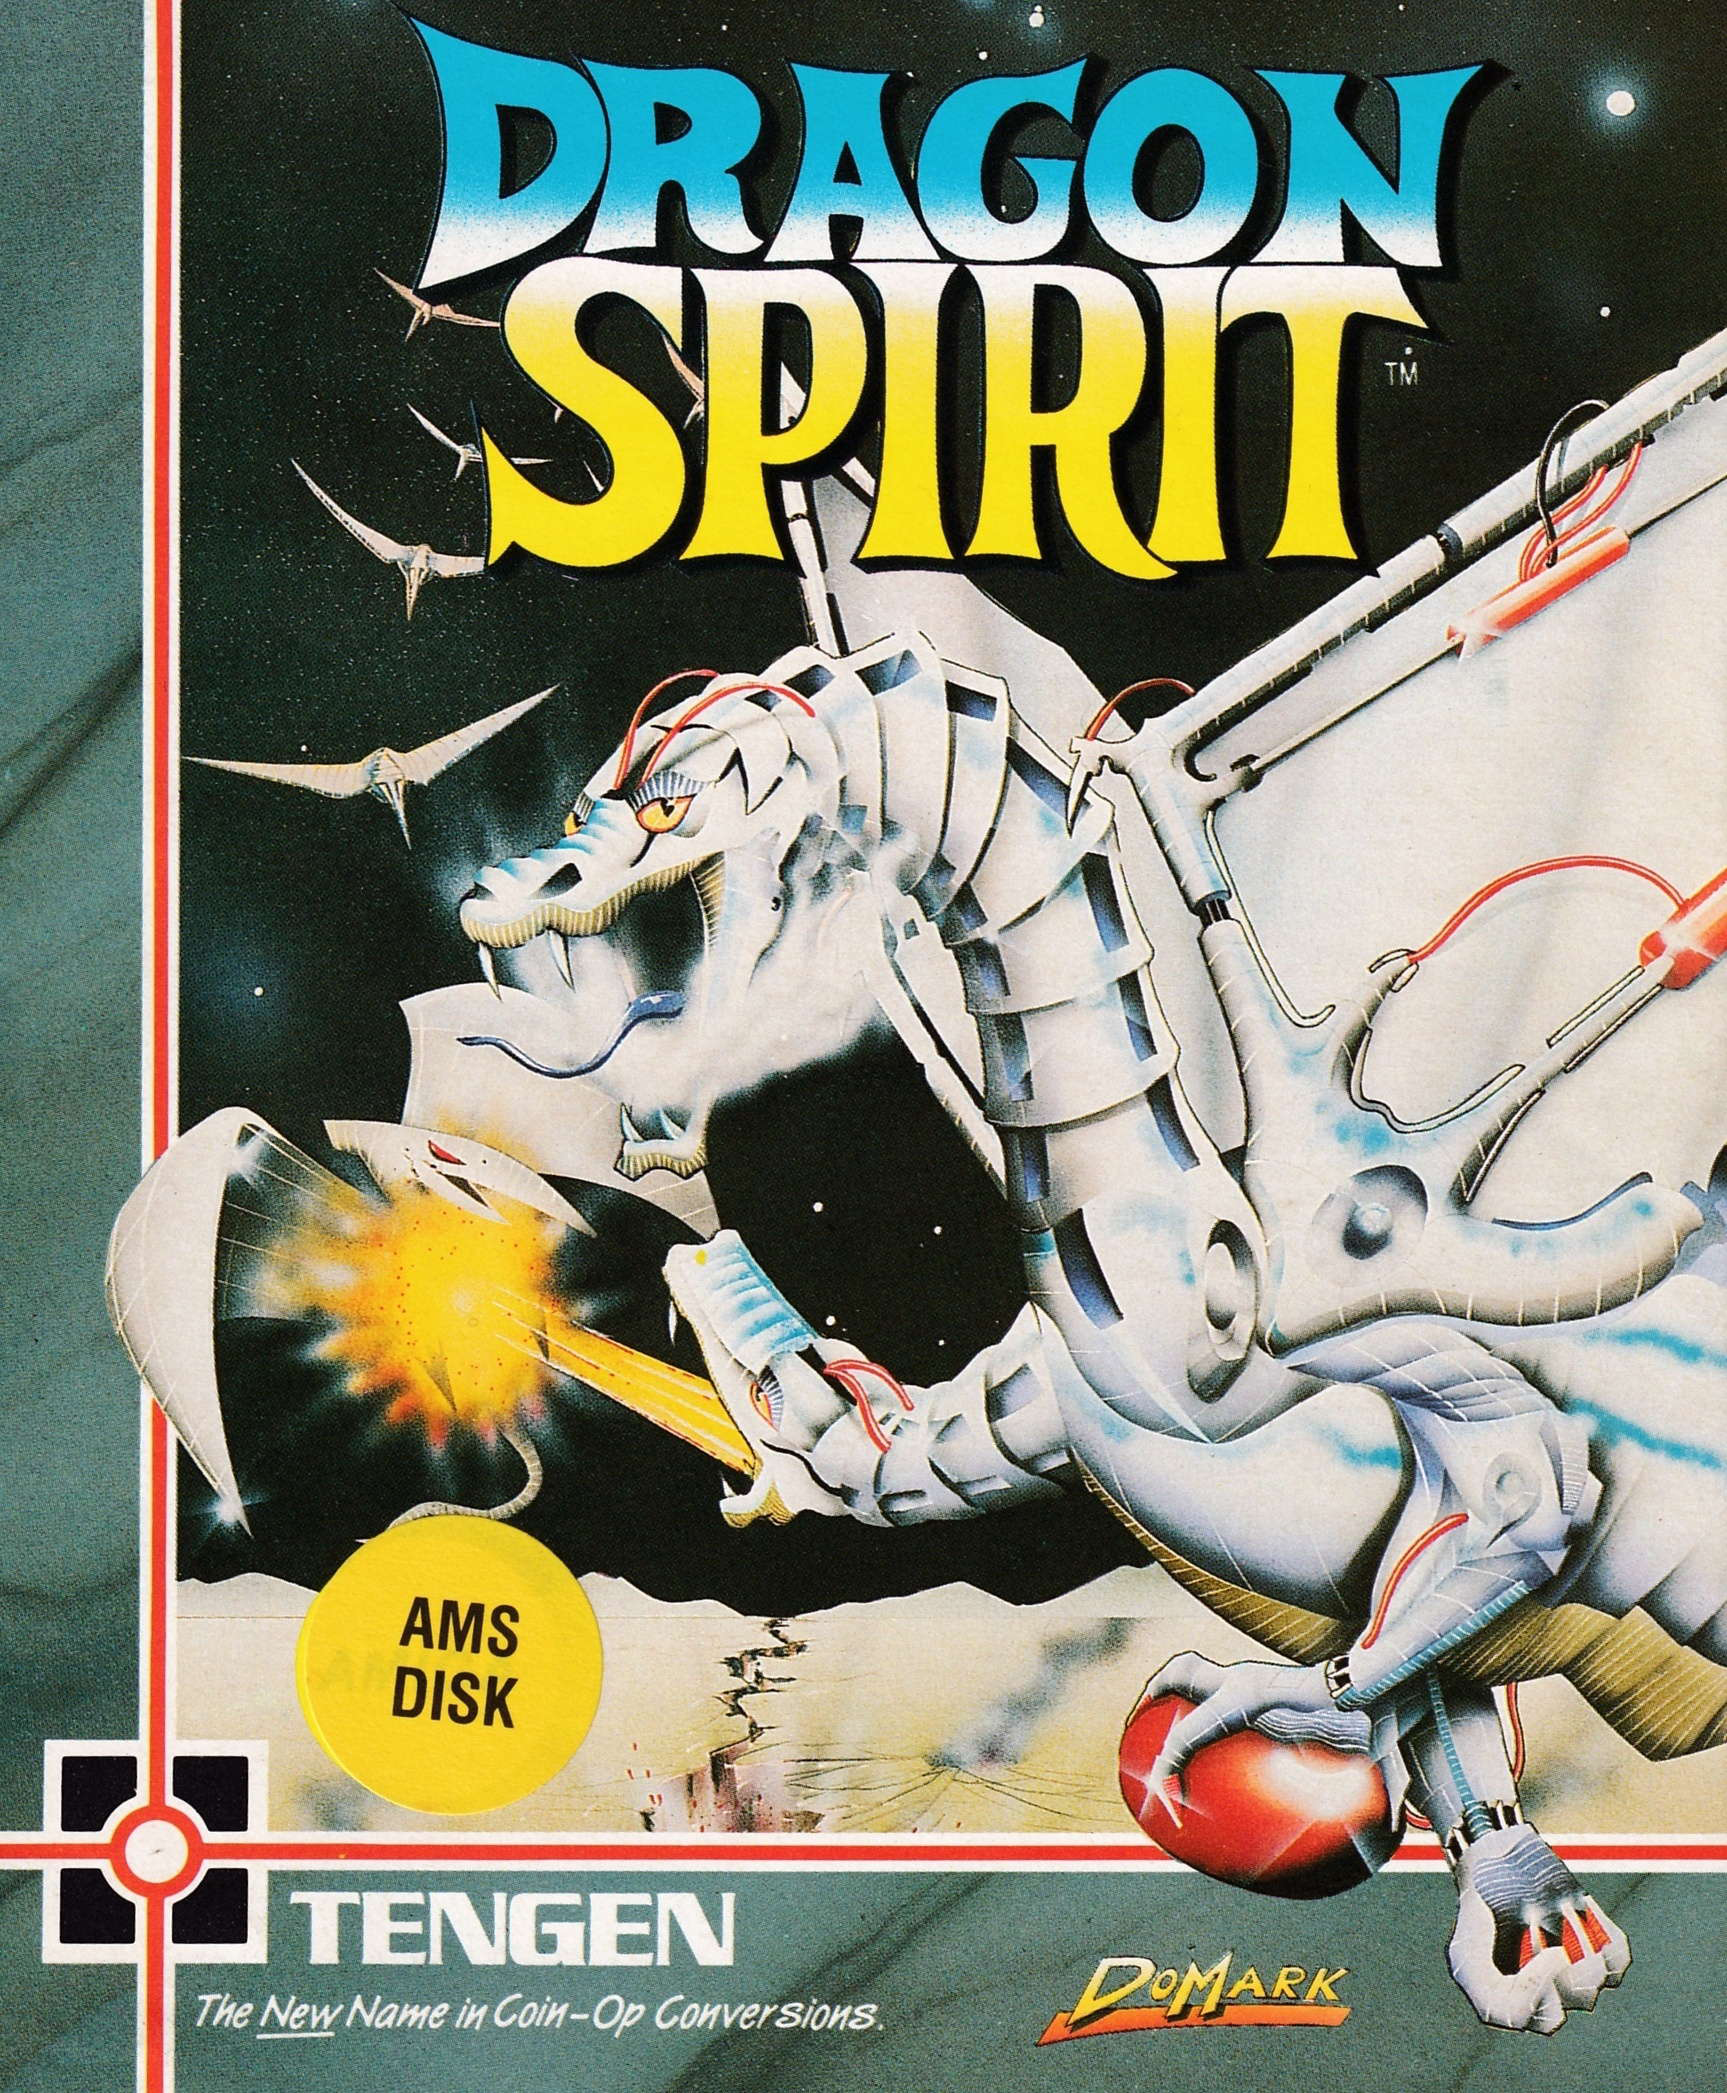 cover of the Amstrad CPC game Dragon Spirit  by GameBase CPC